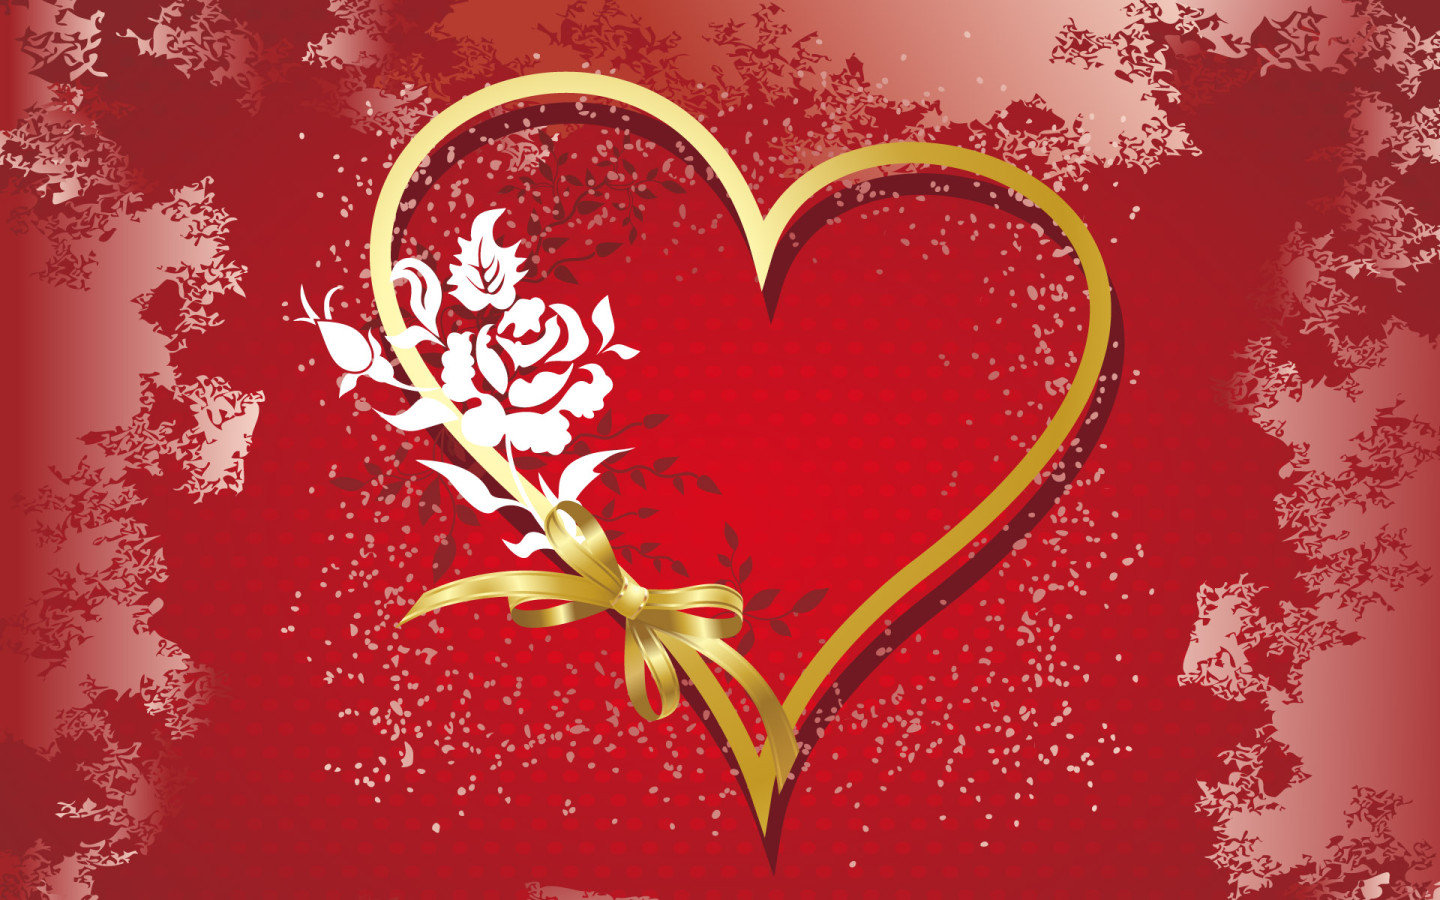 Wallpapers Romantis Valentine's Day 2013